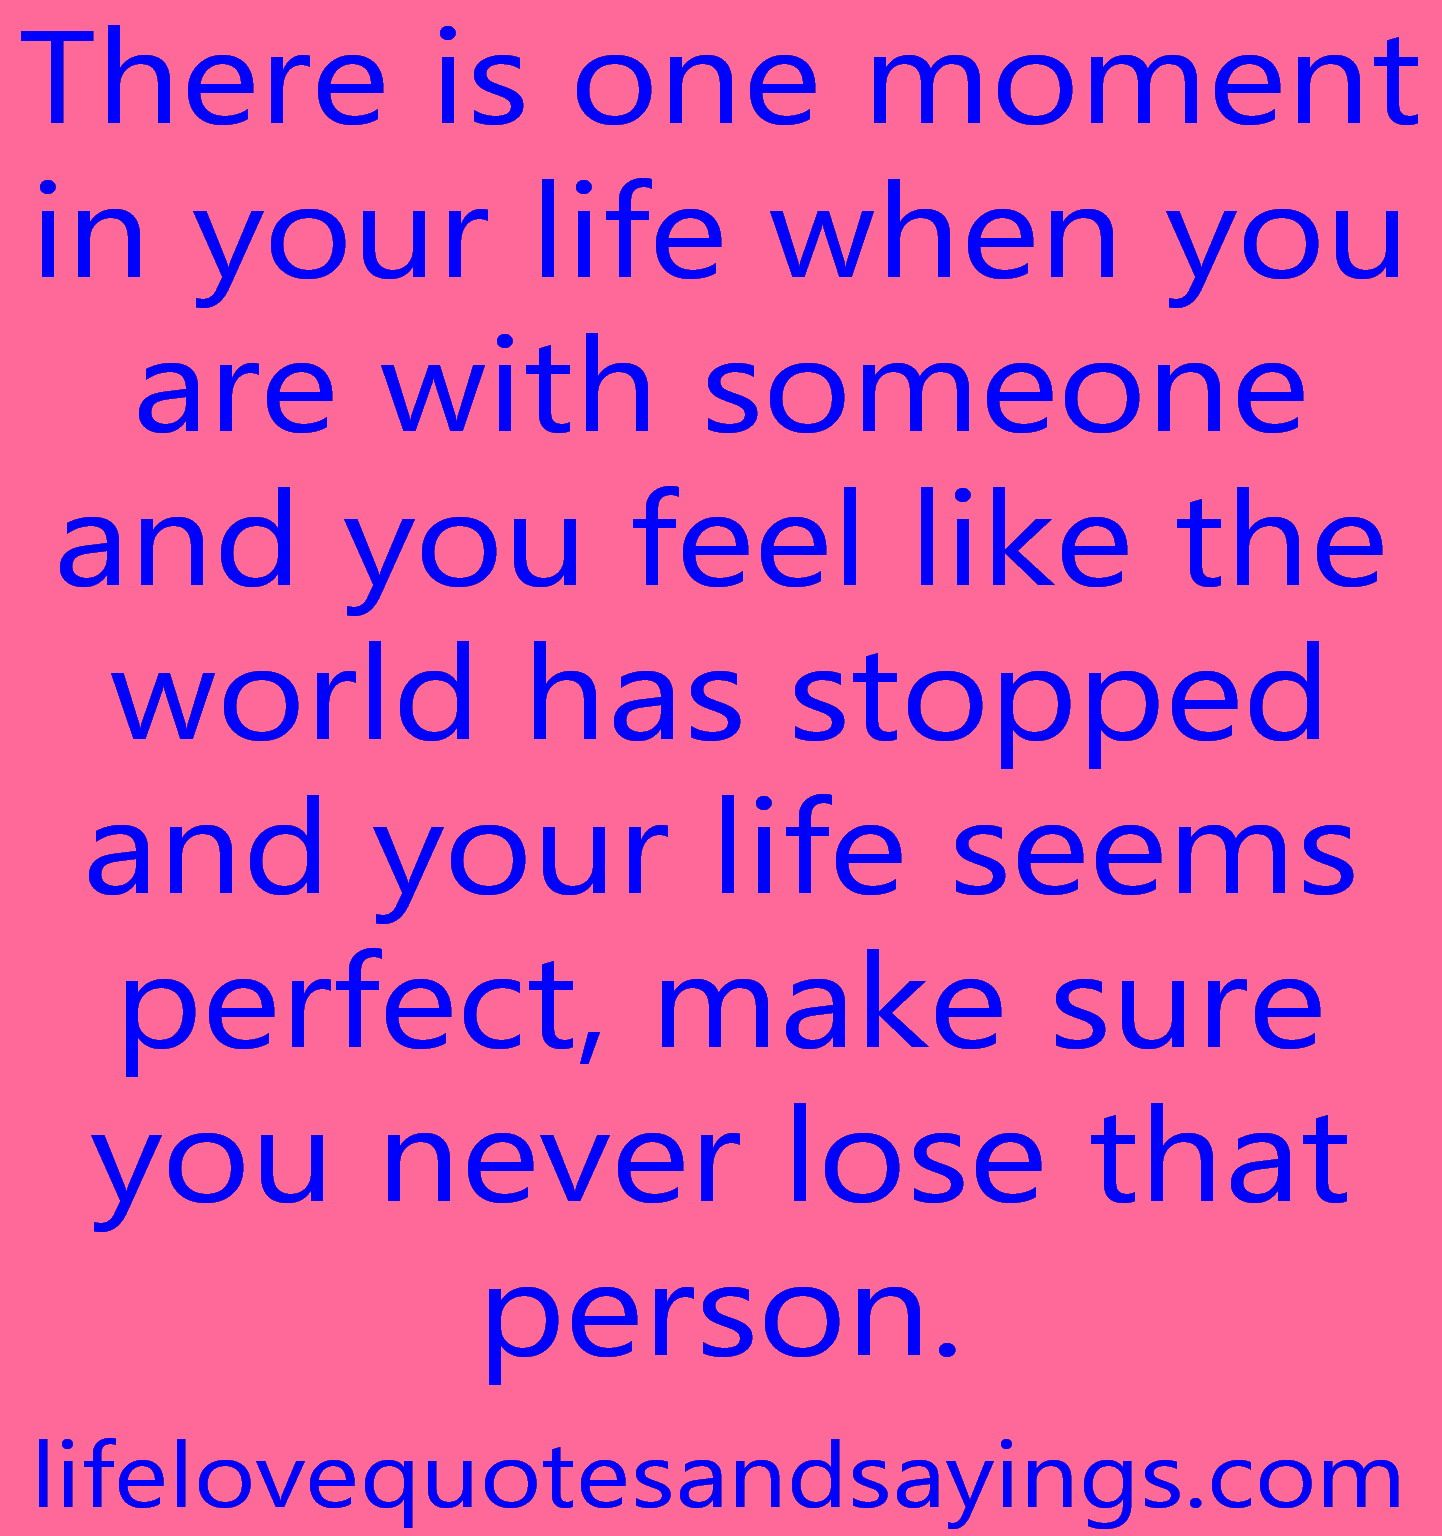 When You Love Someone Quotes | ... In Your Life When You Are With Someone  .. | Love Quotes And Sayings